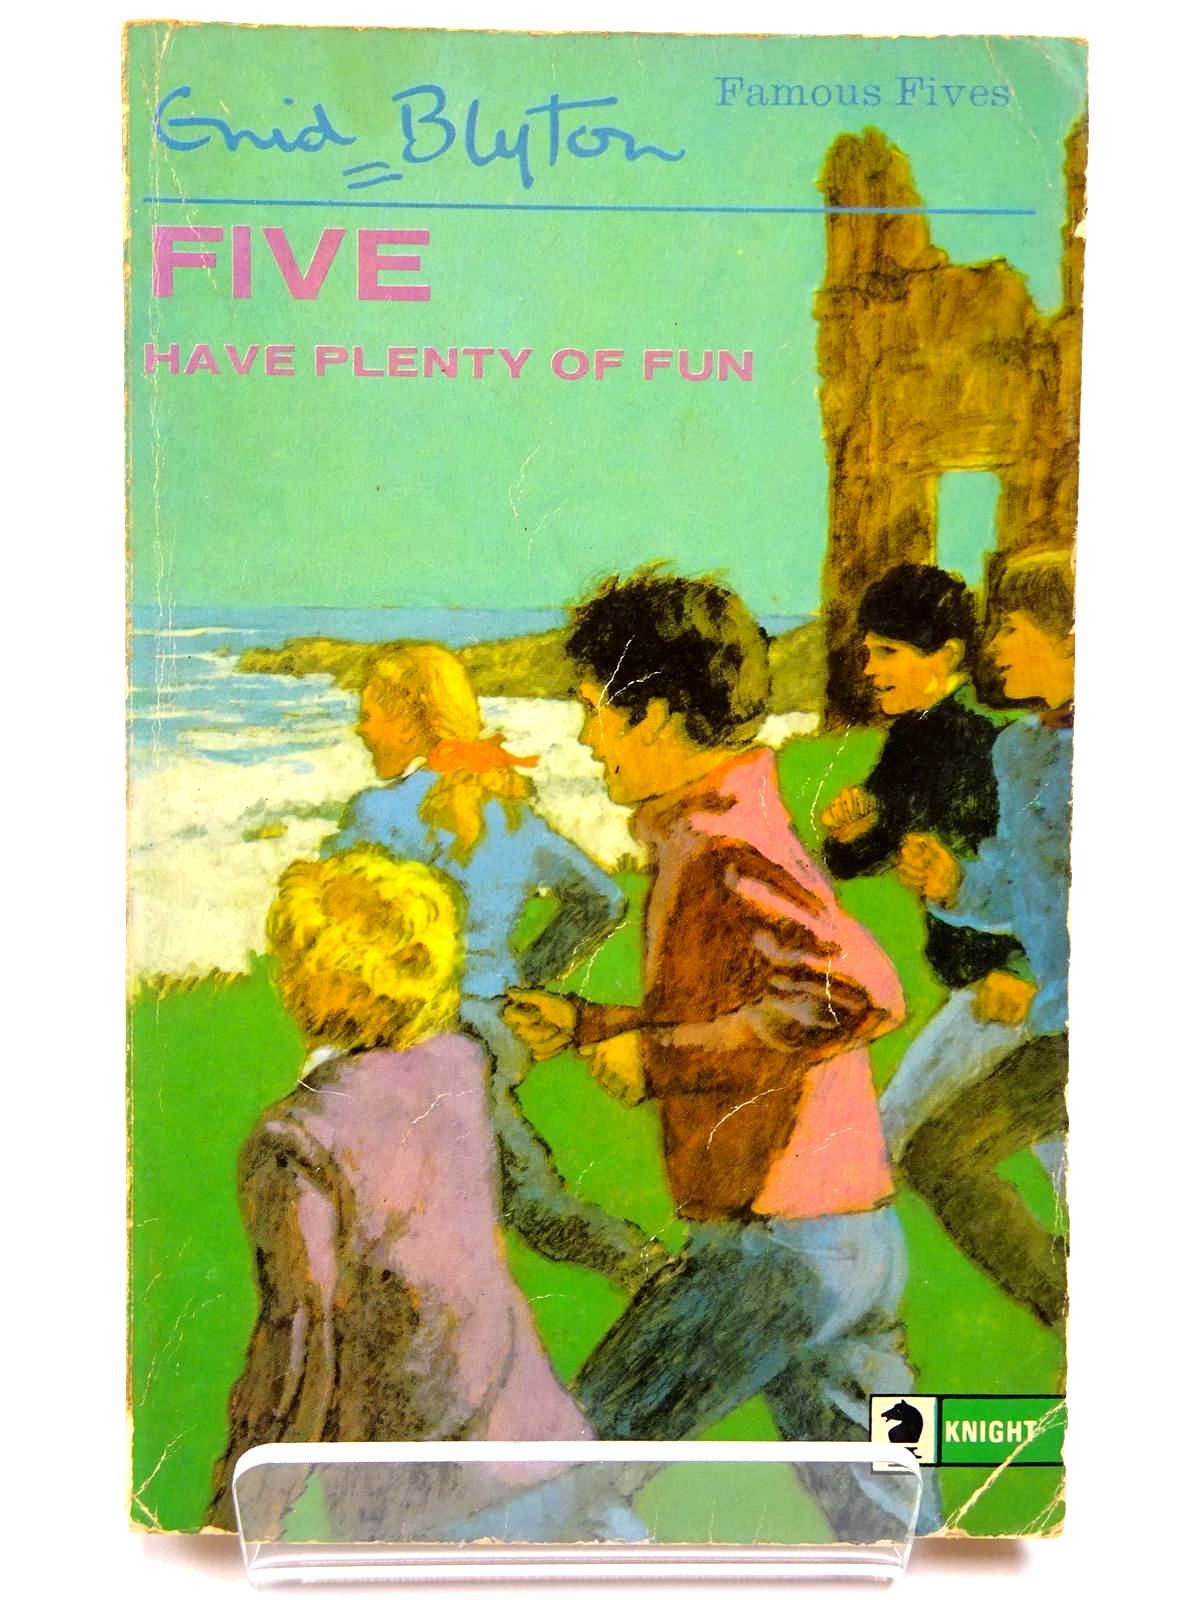 Photo of FIVE HAVE PLENTY OF FUN written by Blyton, Enid illustrated by Soper, Eileen published by Knight Books (STOCK CODE: 2130557)  for sale by Stella & Rose's Books